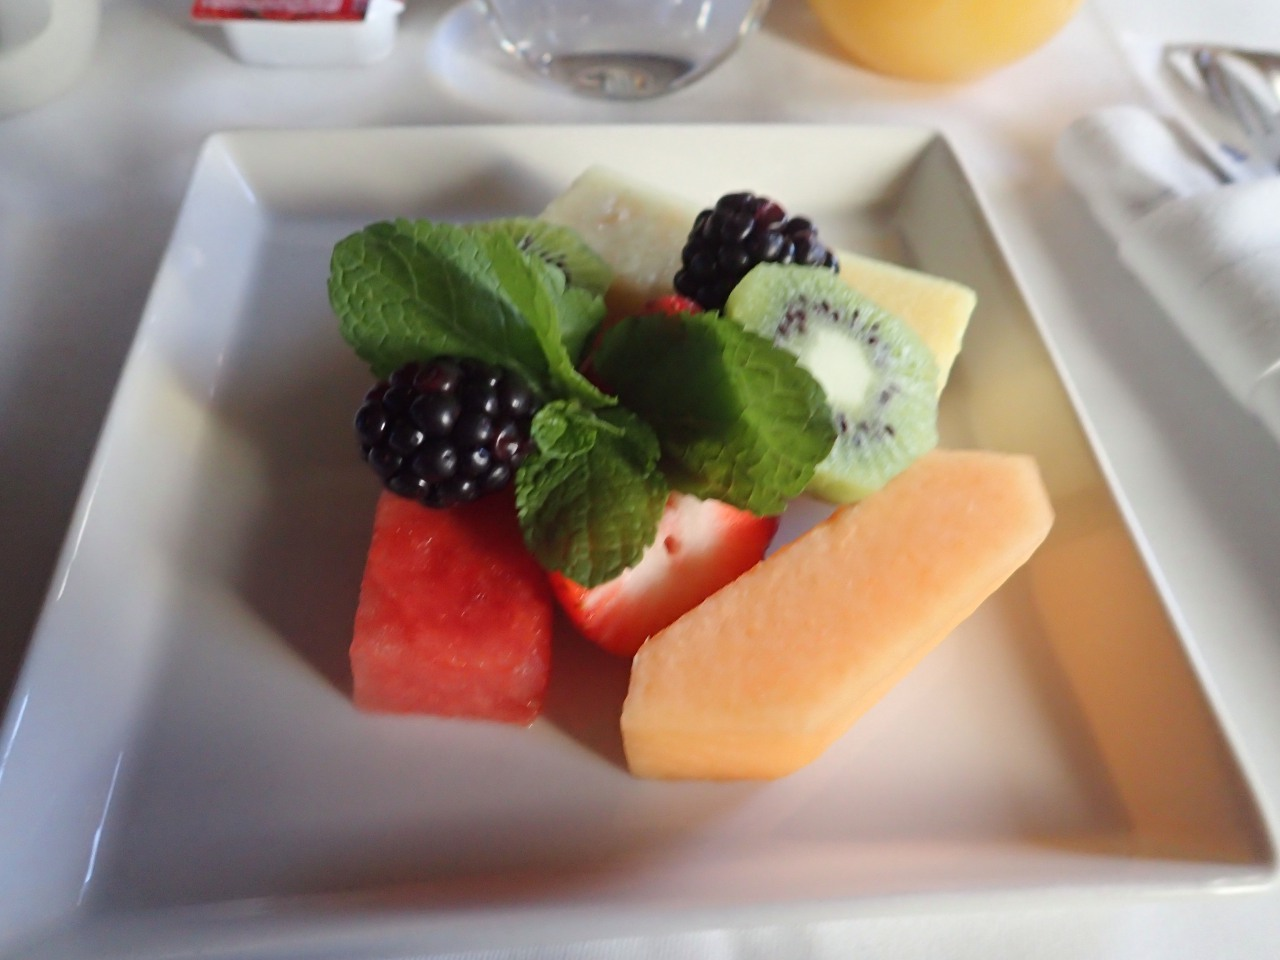 Breakfast Fruit Plate, Singapore A380 Business Class Review